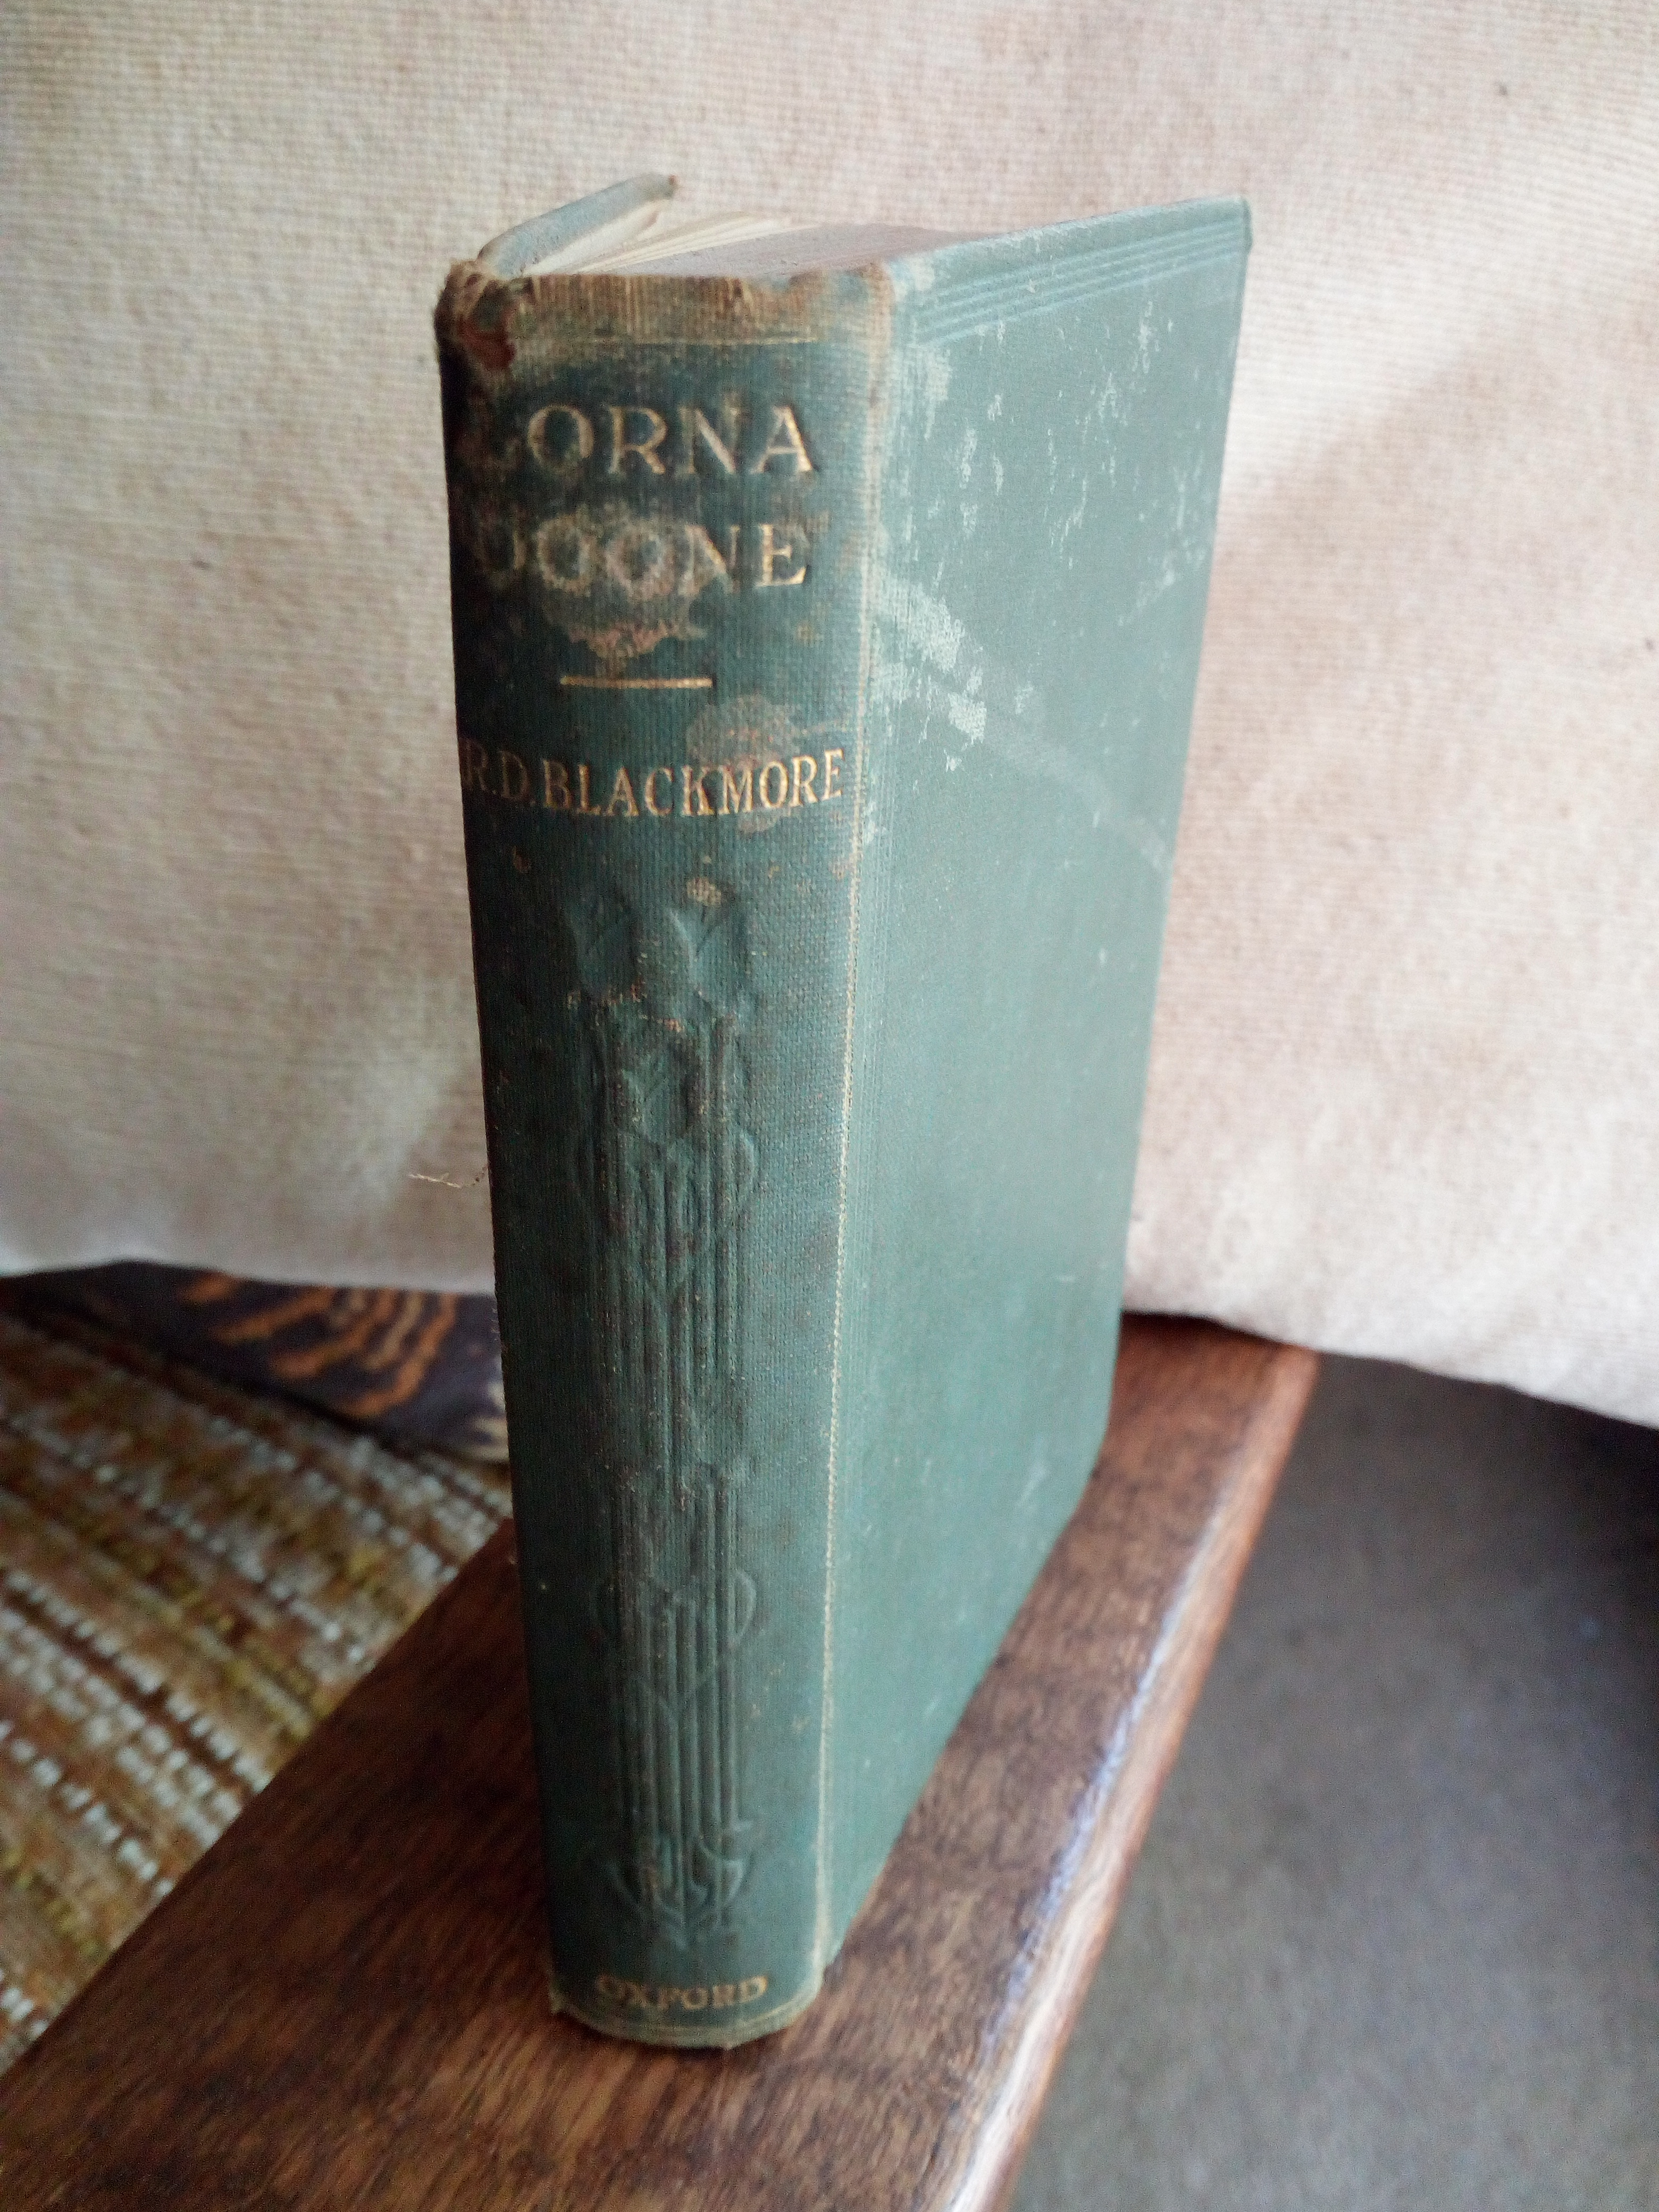 Lorna Doone by R D Blackmore